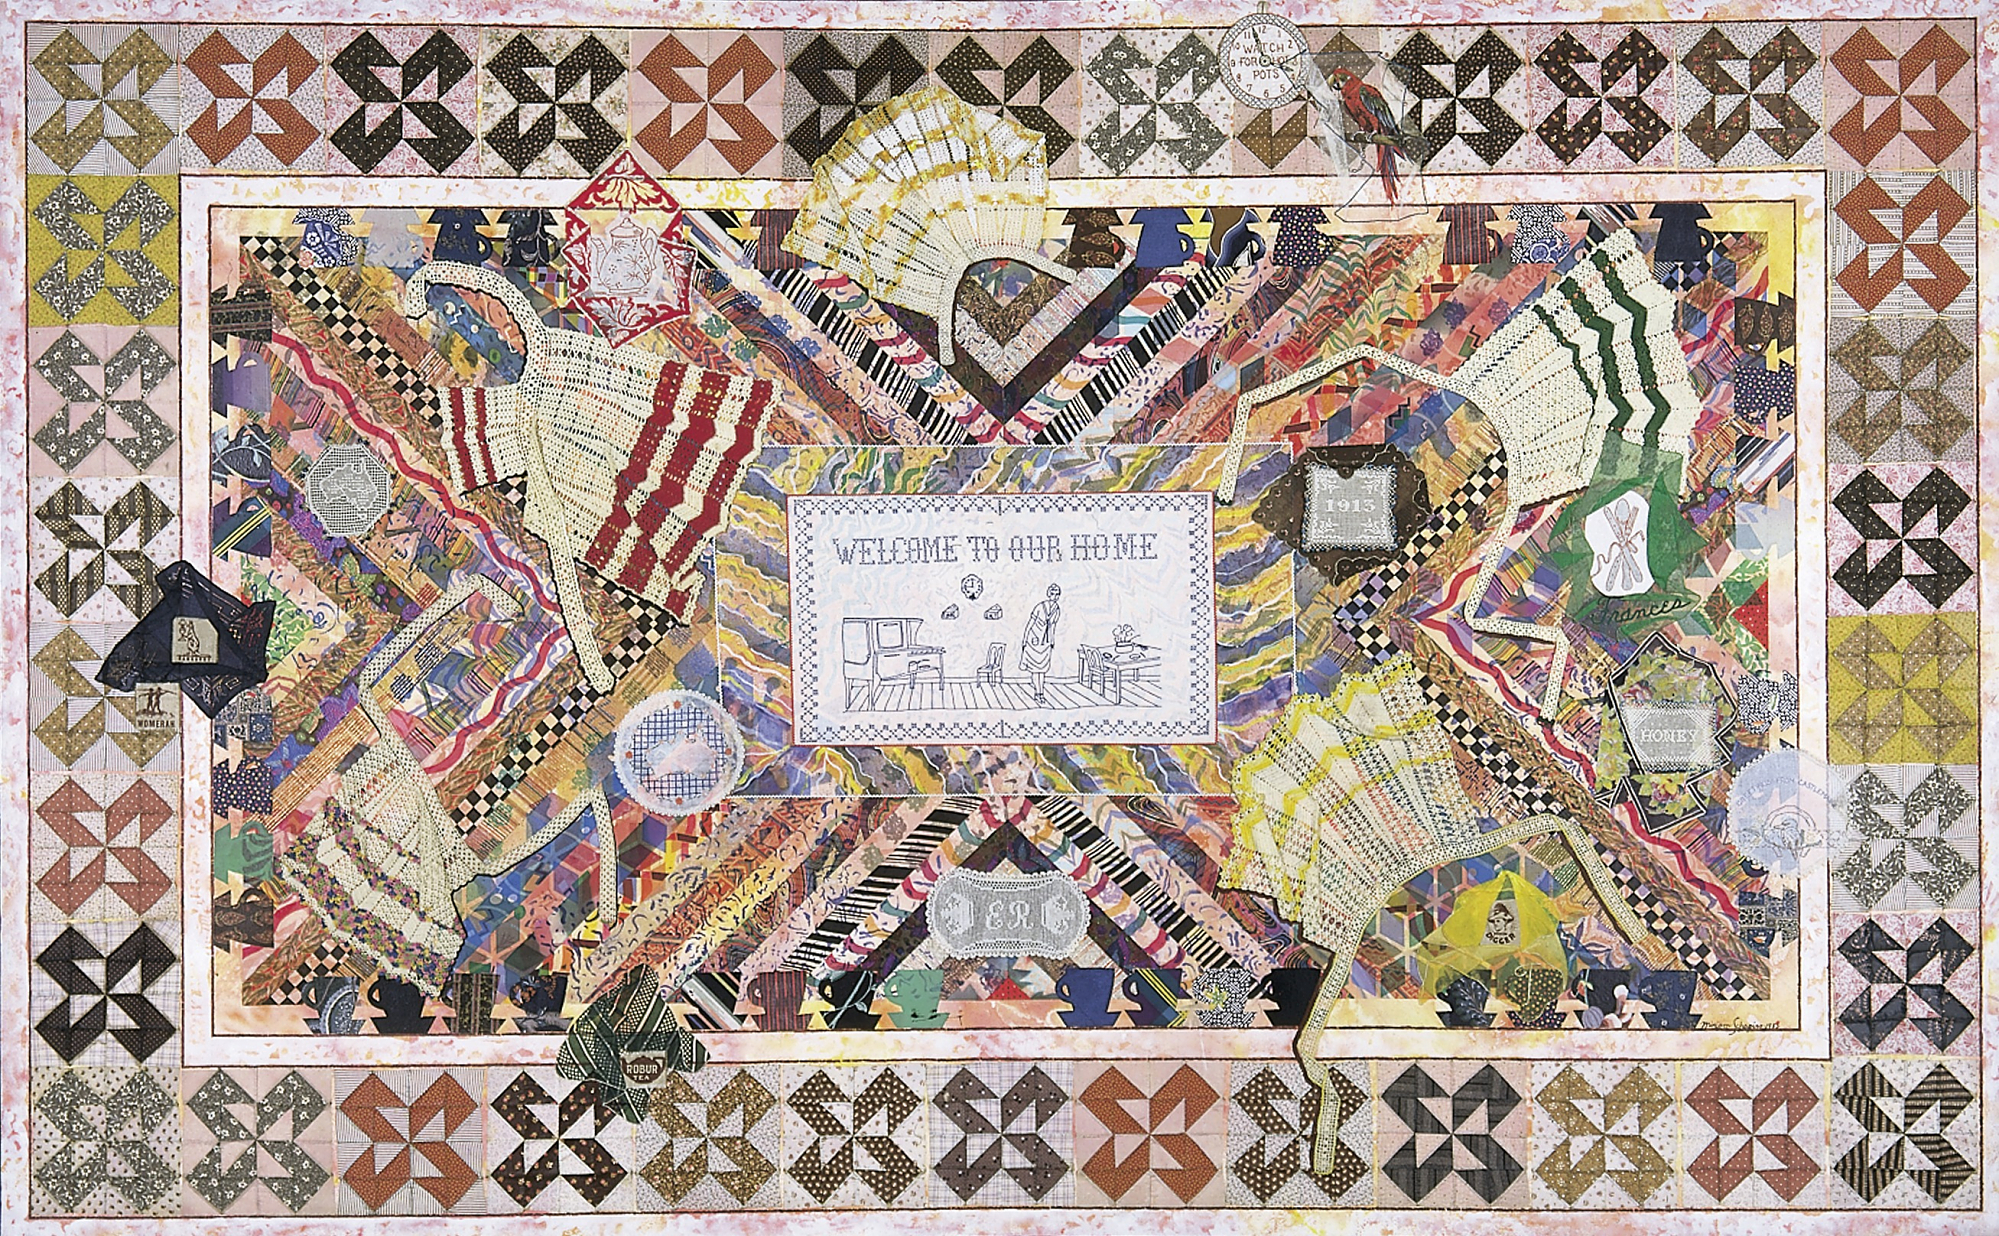 Miriam Schapiro, Wonderland, 1983, acrylic, fabric and plastic beads on canvas, Smithsonian American Art Museum, Gift of an anonymous donor, 1996.88